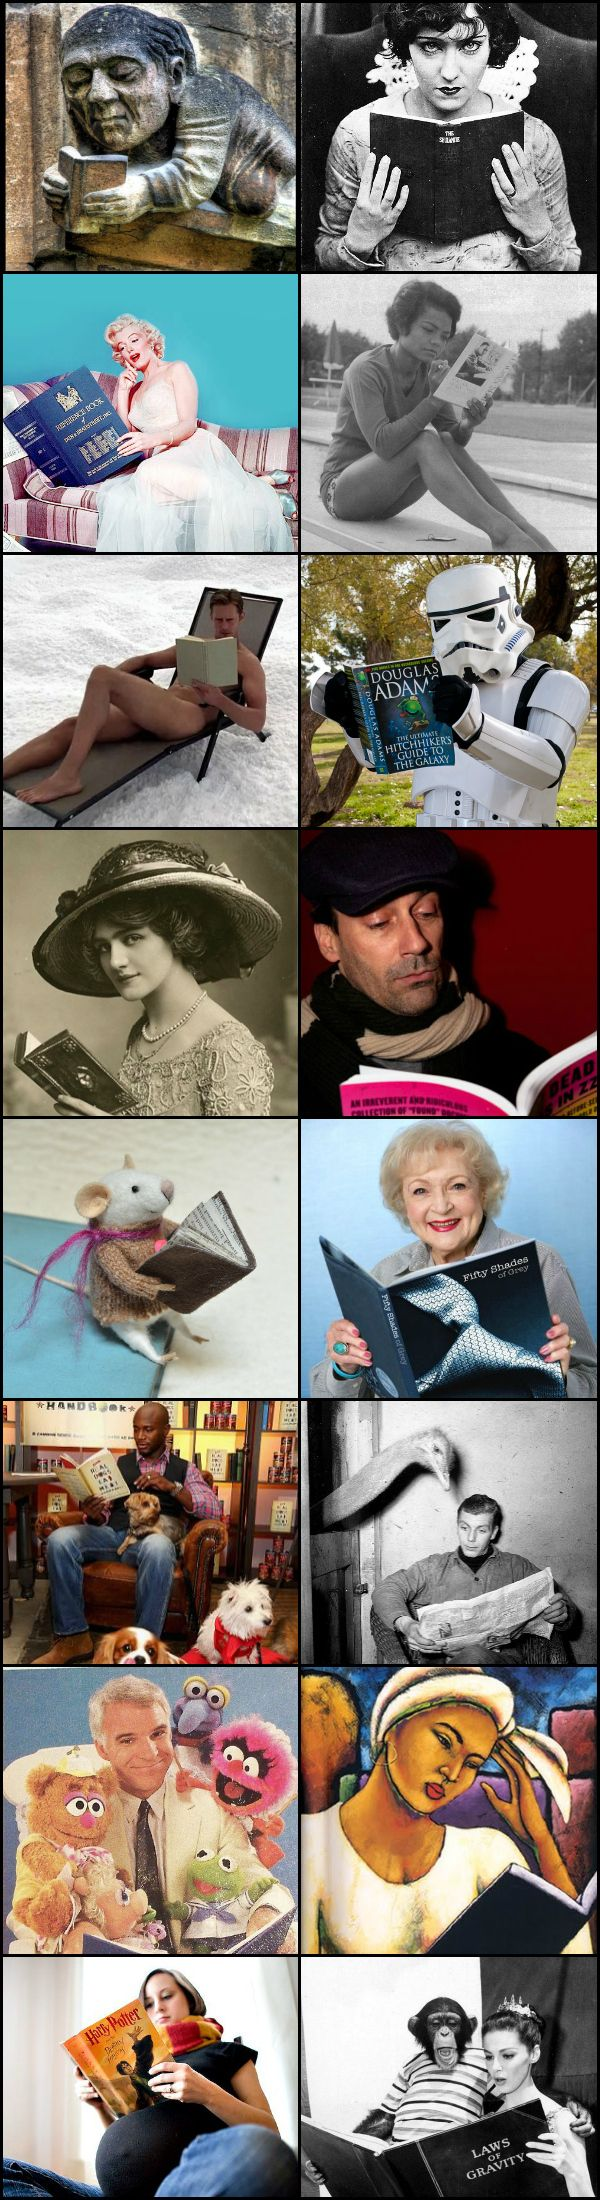 Readers reading: featuring the Muppets, Jon Hamm, Eartha Kitt, Marilyn Monroe, Taye Diggs, a chimpanzee, Gloria Swanson, naked Alexander Skarsgård, Lily Elise, and more. Via Diamonds in the Library